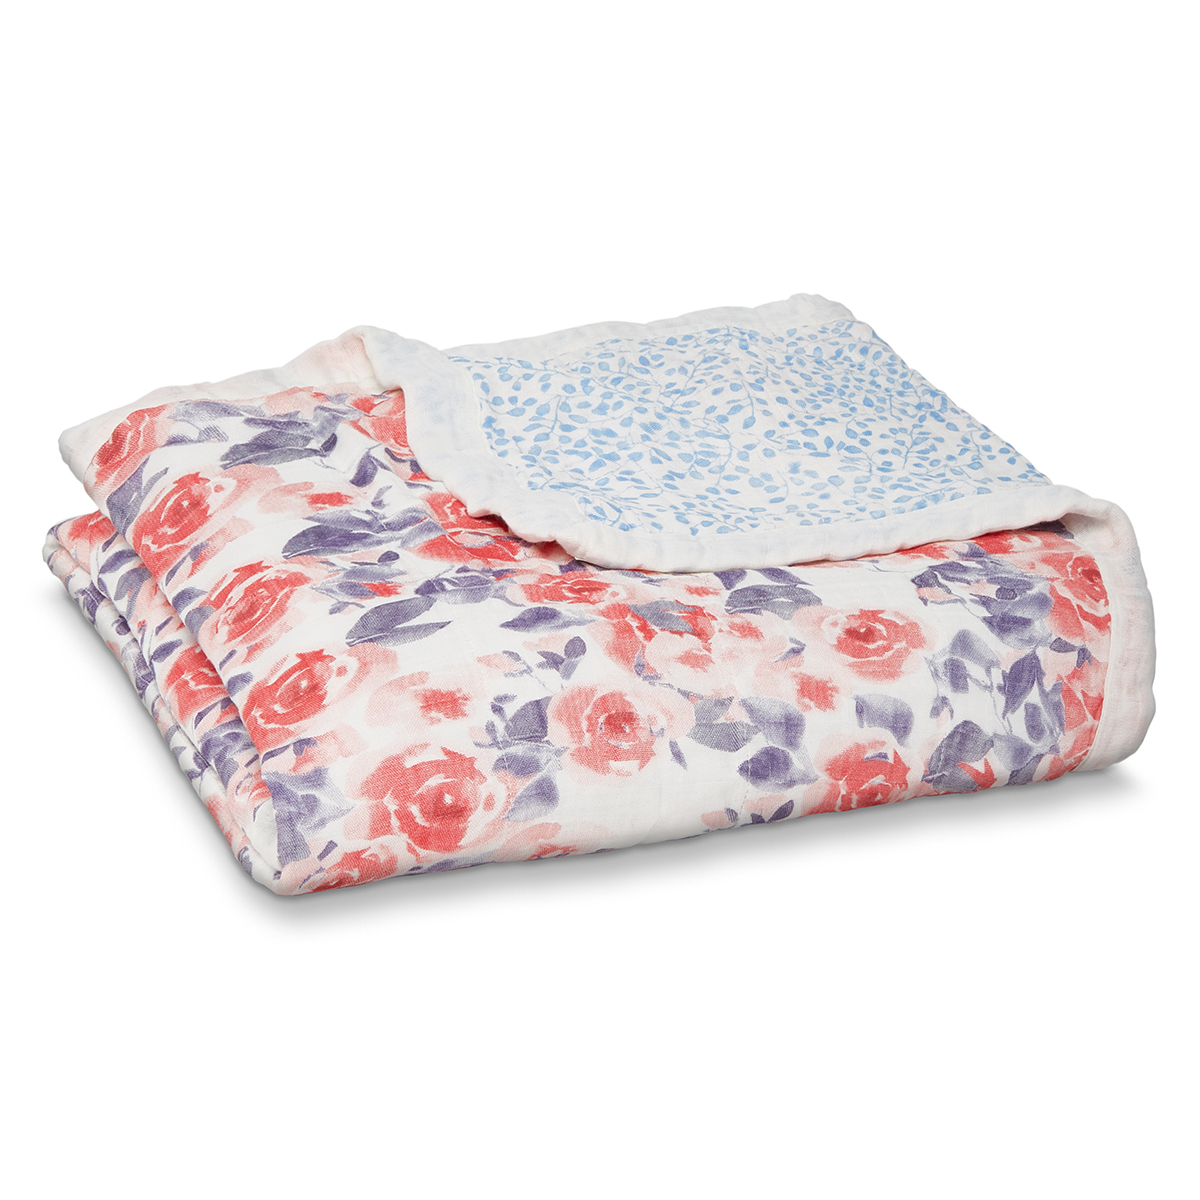 Linge de lit Couverture de Rêve Silky Soft - Watercolour Garden Couverture de Rêve Silky Soft - Watercolour Garden